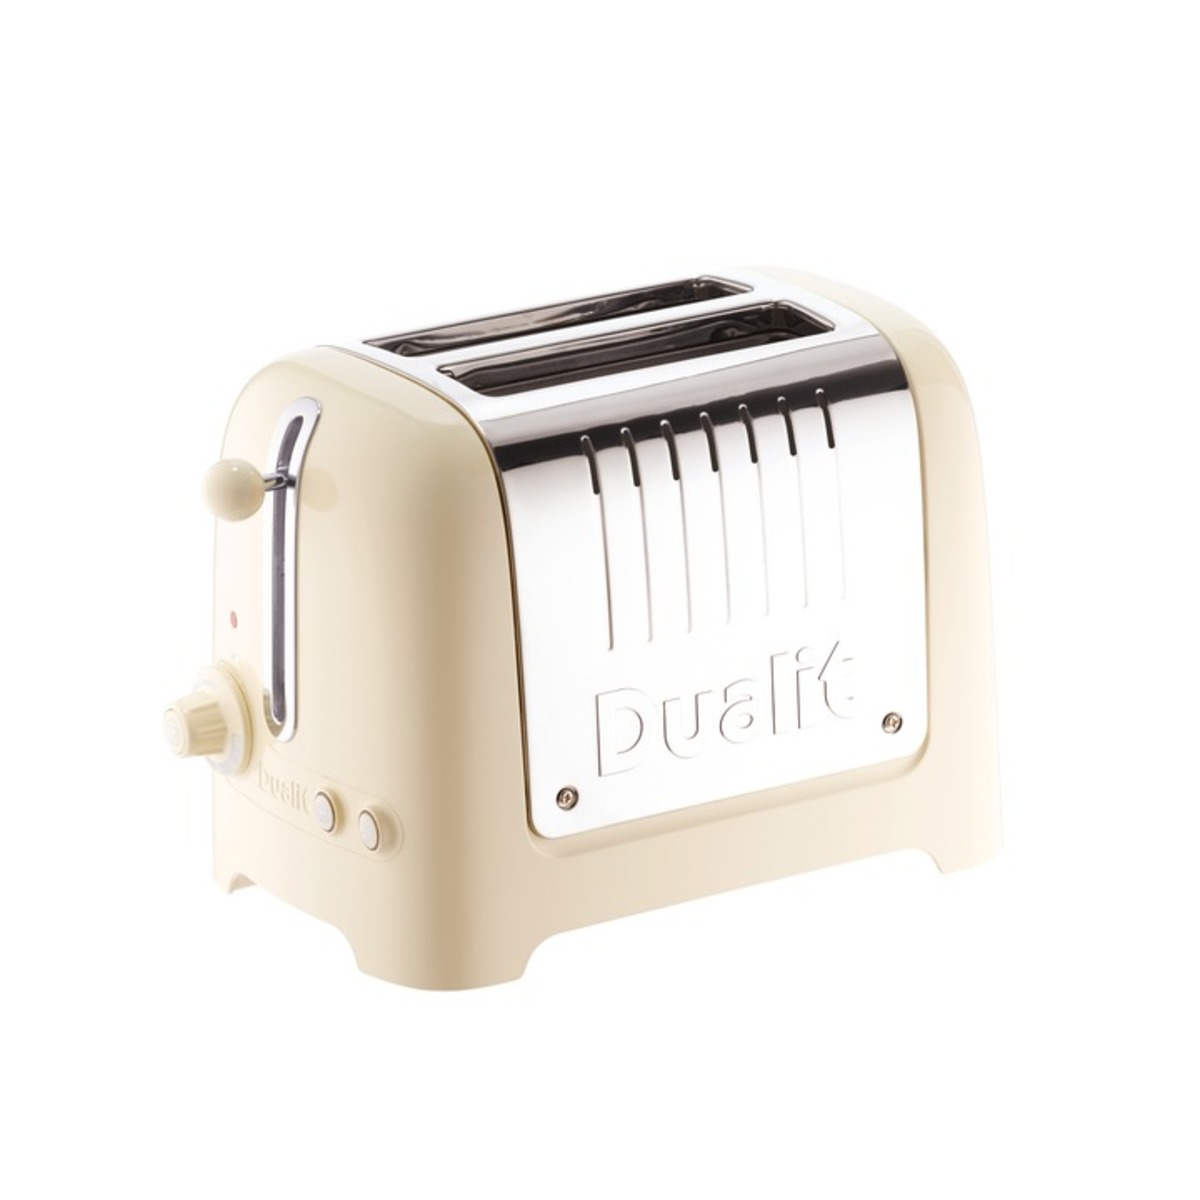 Image of Dualit 26202 2 Slot Lite Toaster, Cream Gloss